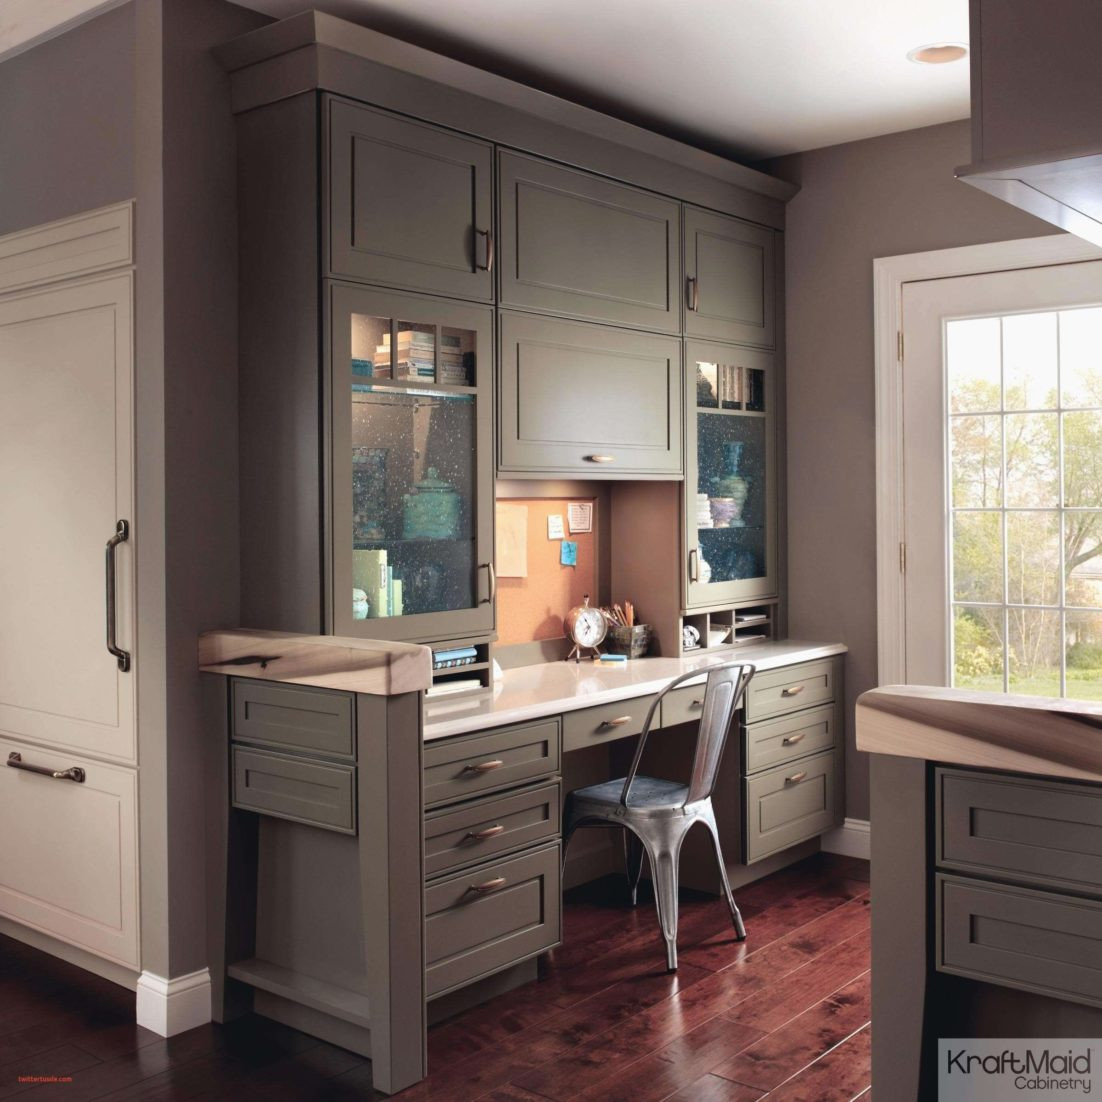 hardwood flooring countertops diy of oak kitchen cabinets pickled maple awesome cabinet 0d scheme wooden inside oak kitchen cabinets pickled maple kitchen cabinets awesome kitchen cabinet 0d kitchen scheme wooden kitchen decor